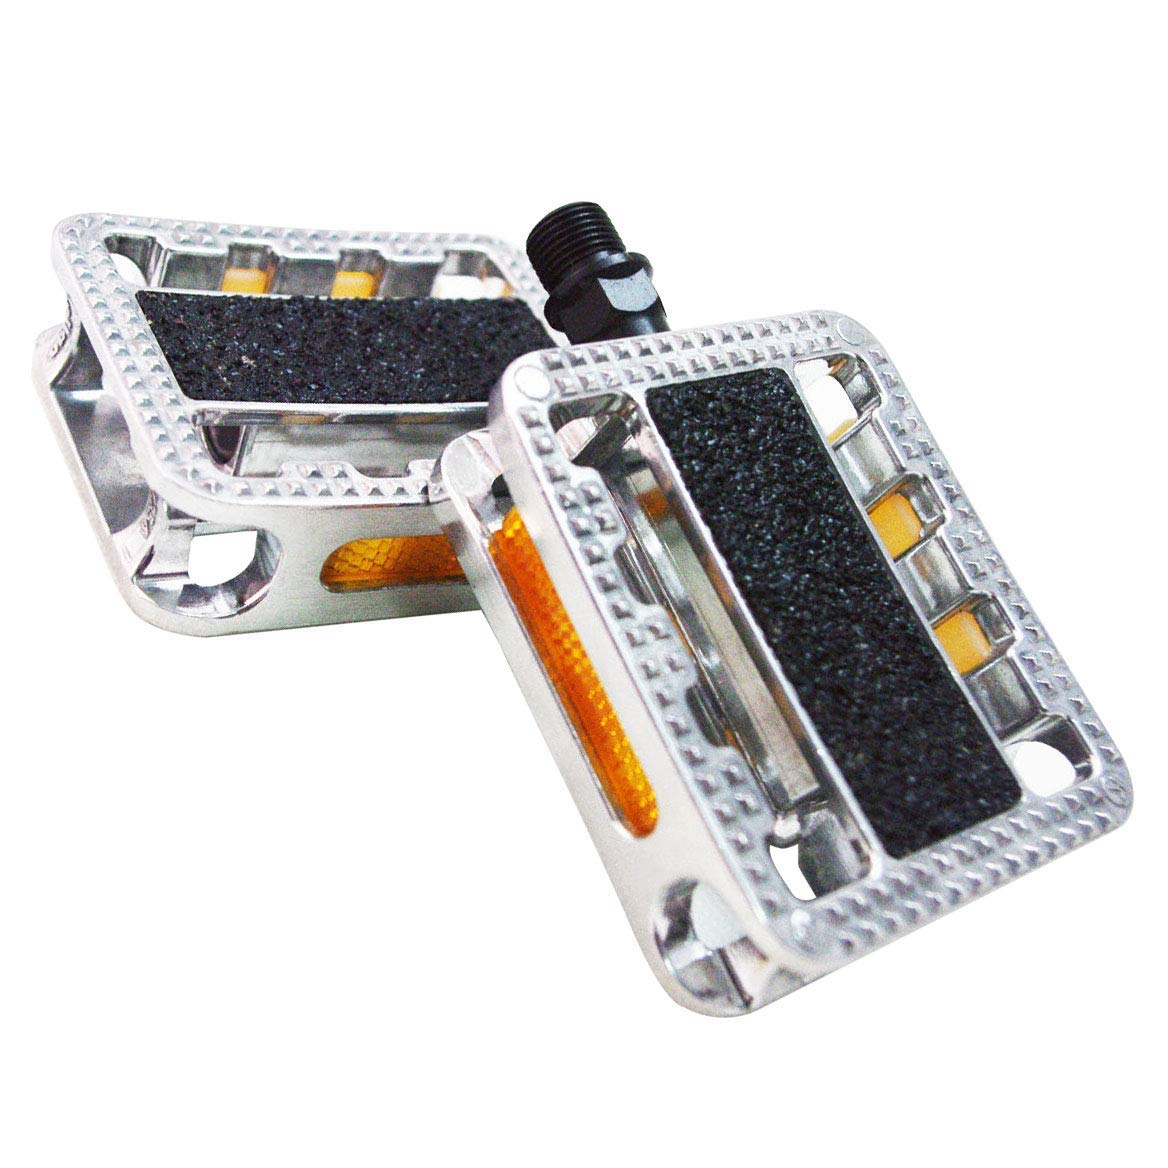 Dkicks Sand Paper Pedal Alloy Bike Pedal